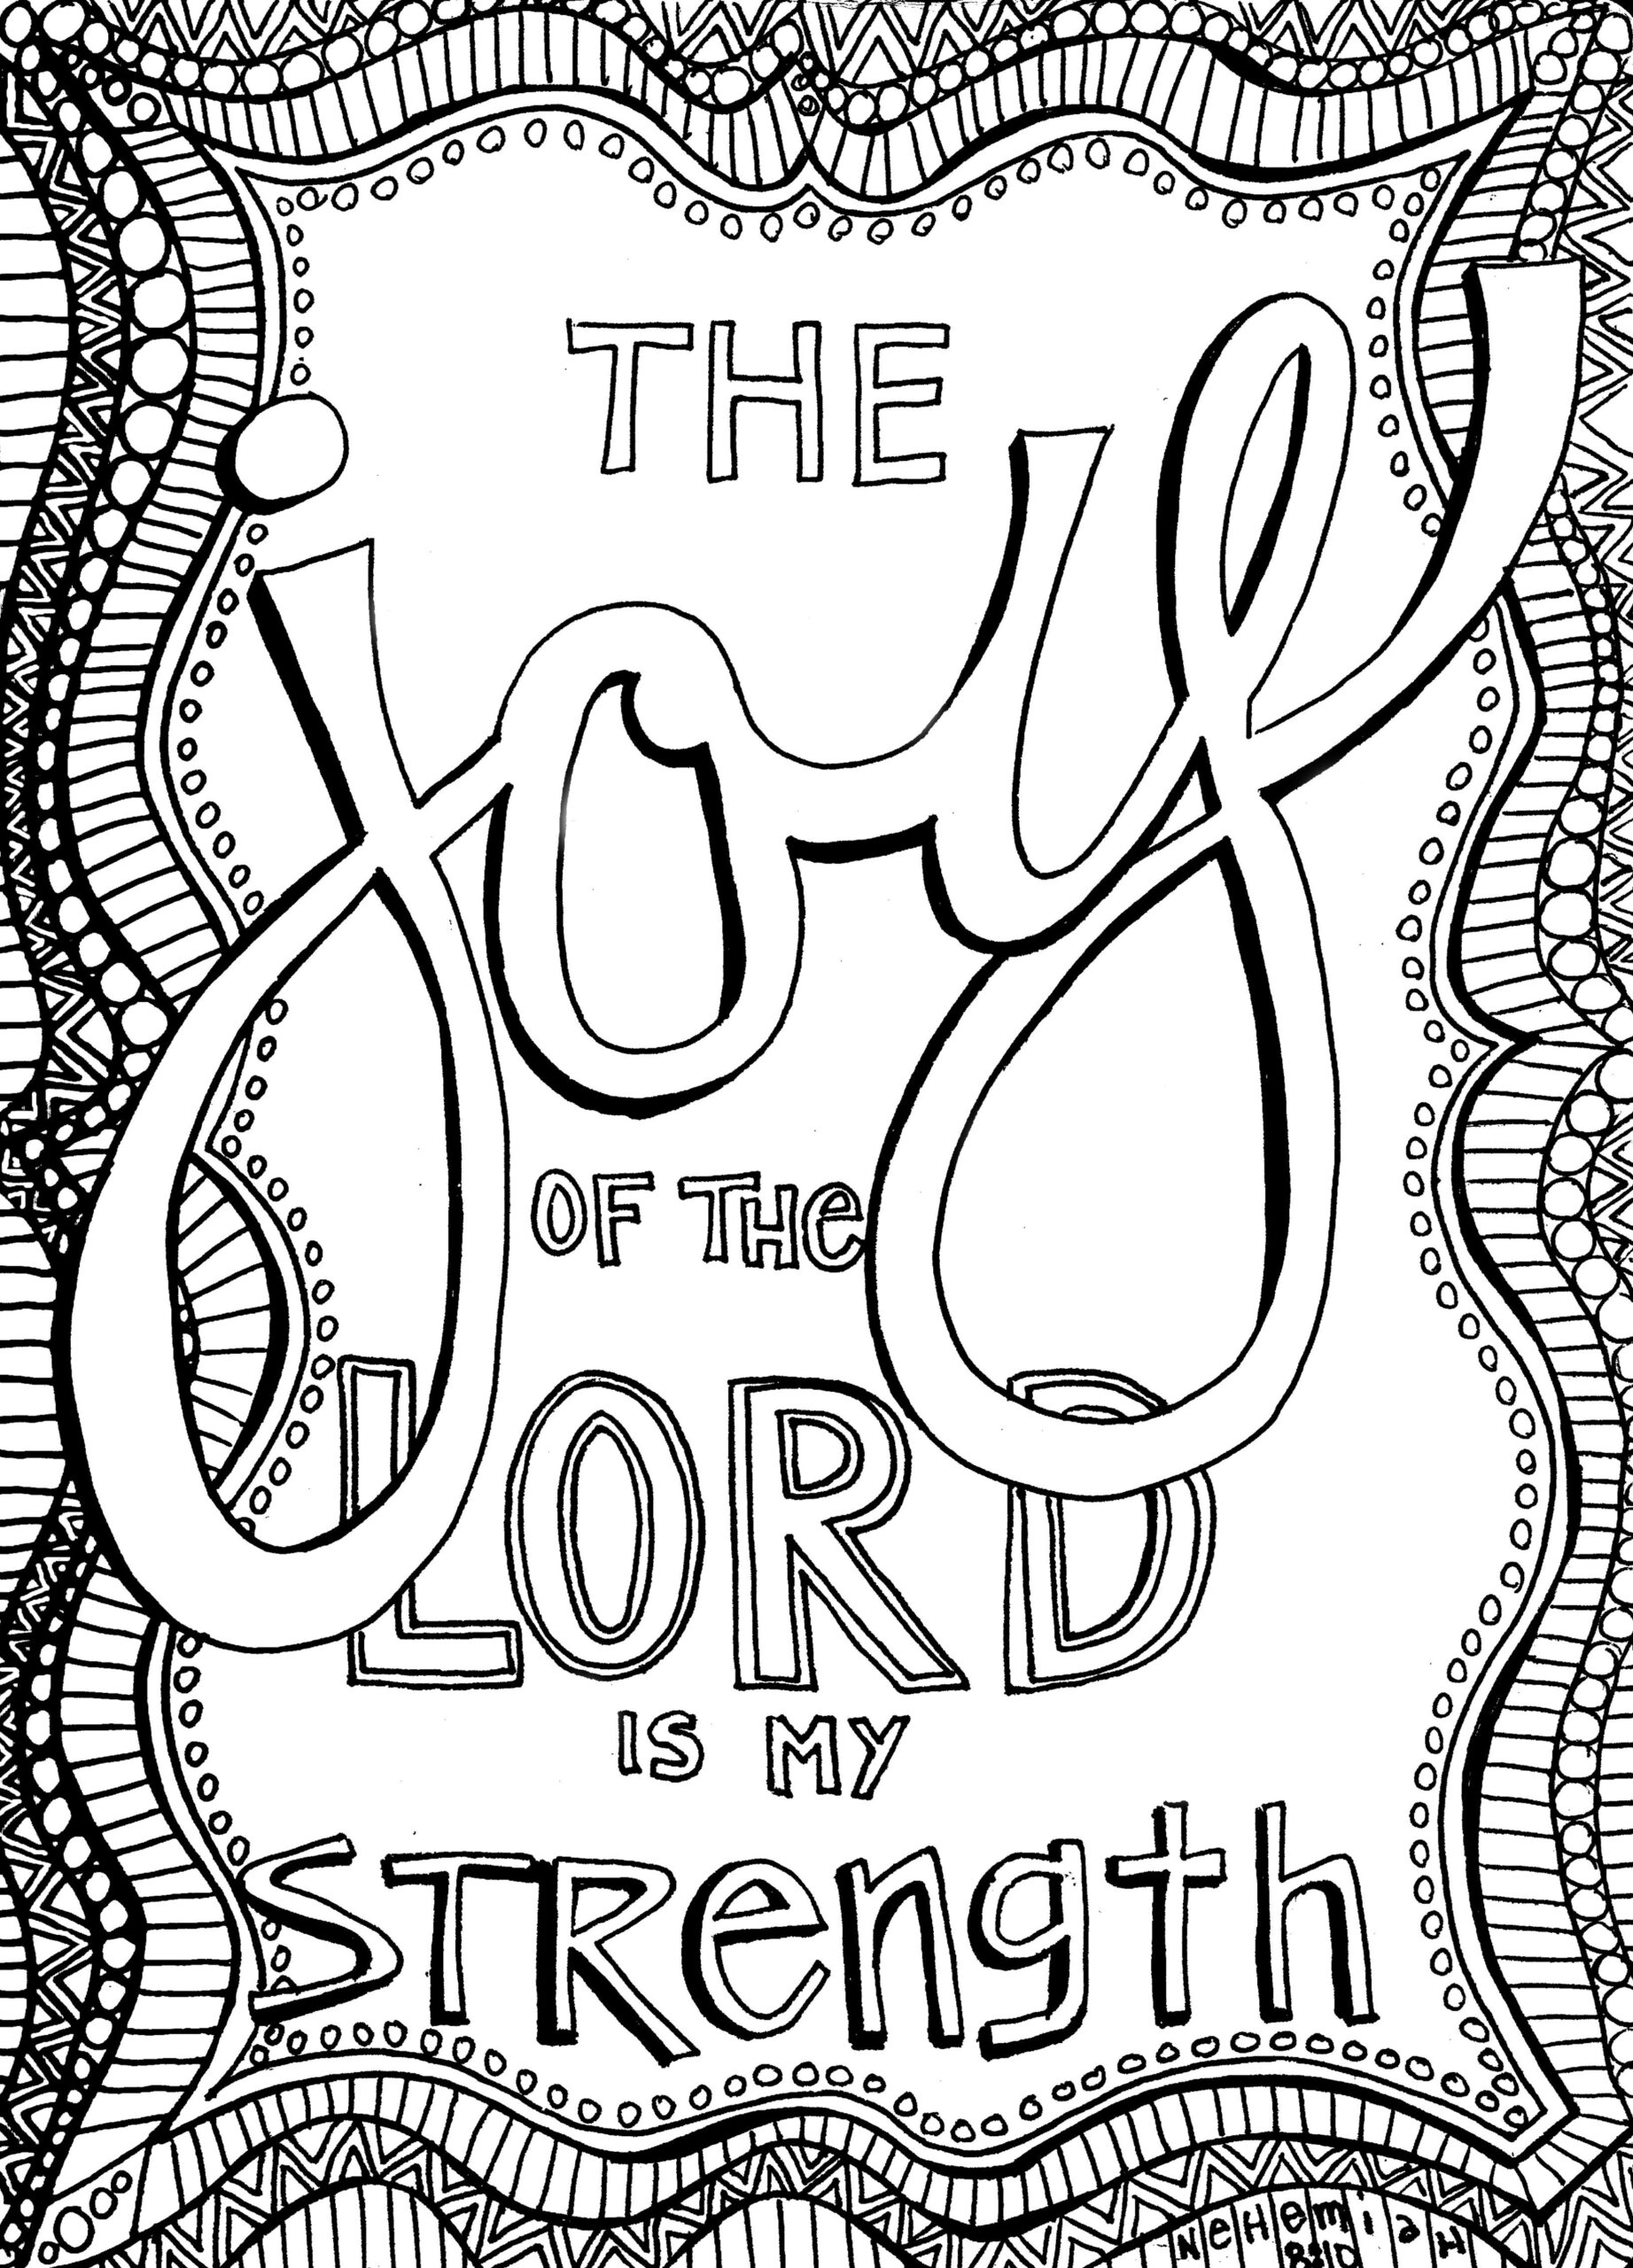 the joy of lord sunday doodle from victory road is my strength coloring neh science coloring pages The Joy Of The Lord Is My Strength Coloring Page